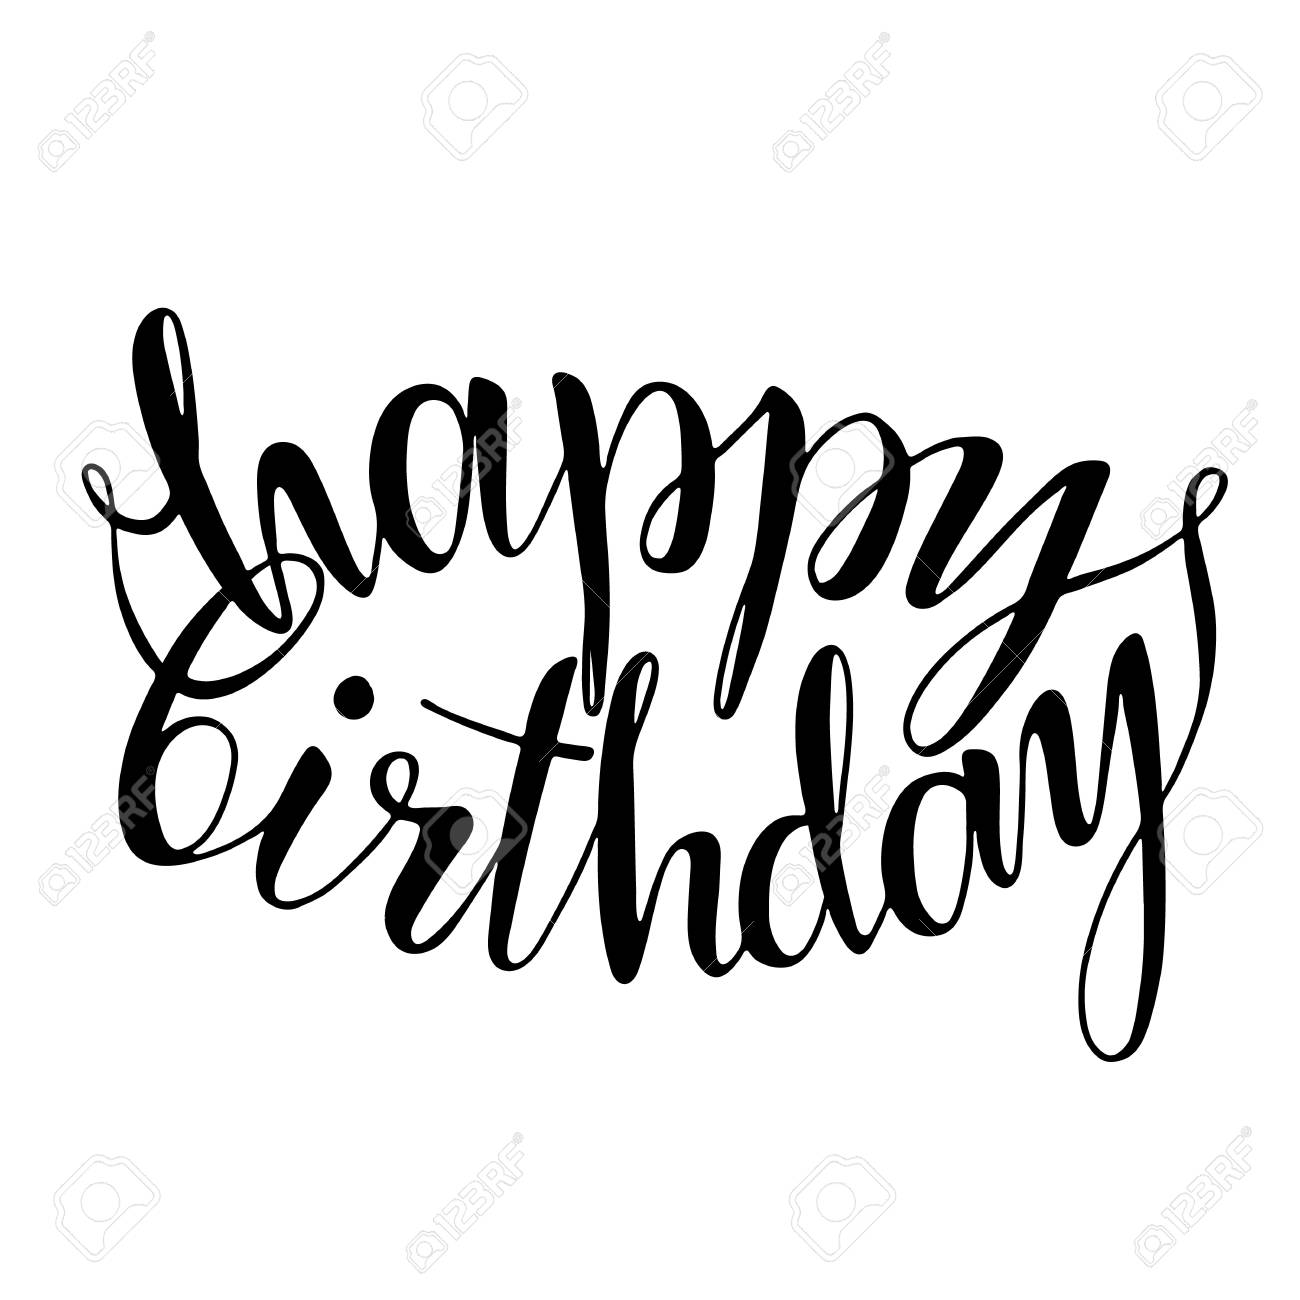 Happy Birthday Words Hand Drawn Creative Calligraphy And Brush Pen Lettering Design For Holiday